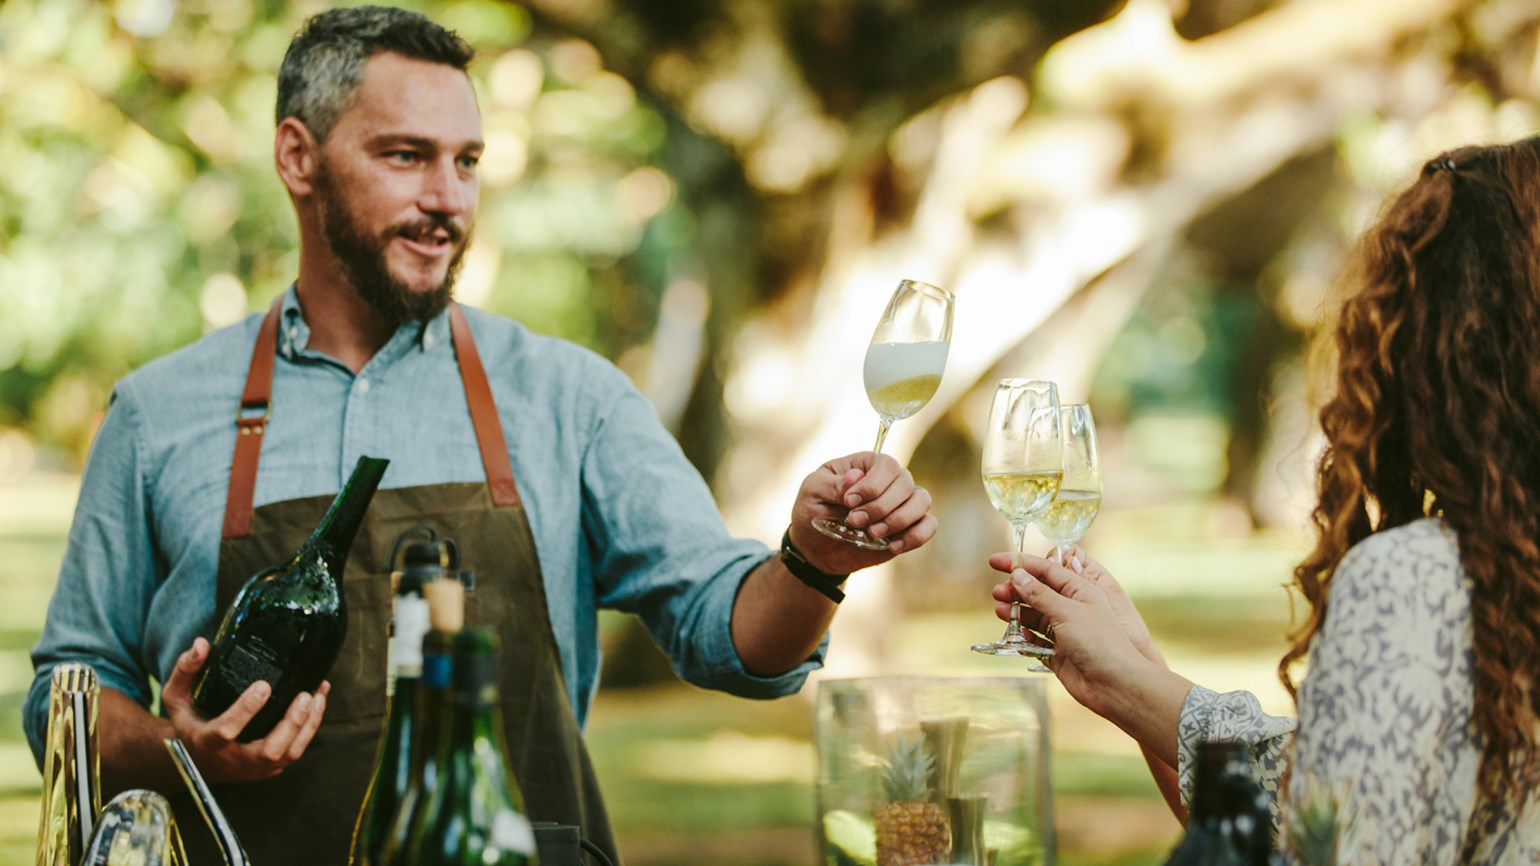 Four Seasons Maui's Fire & Wine dinners feed guests' curiosity, as well